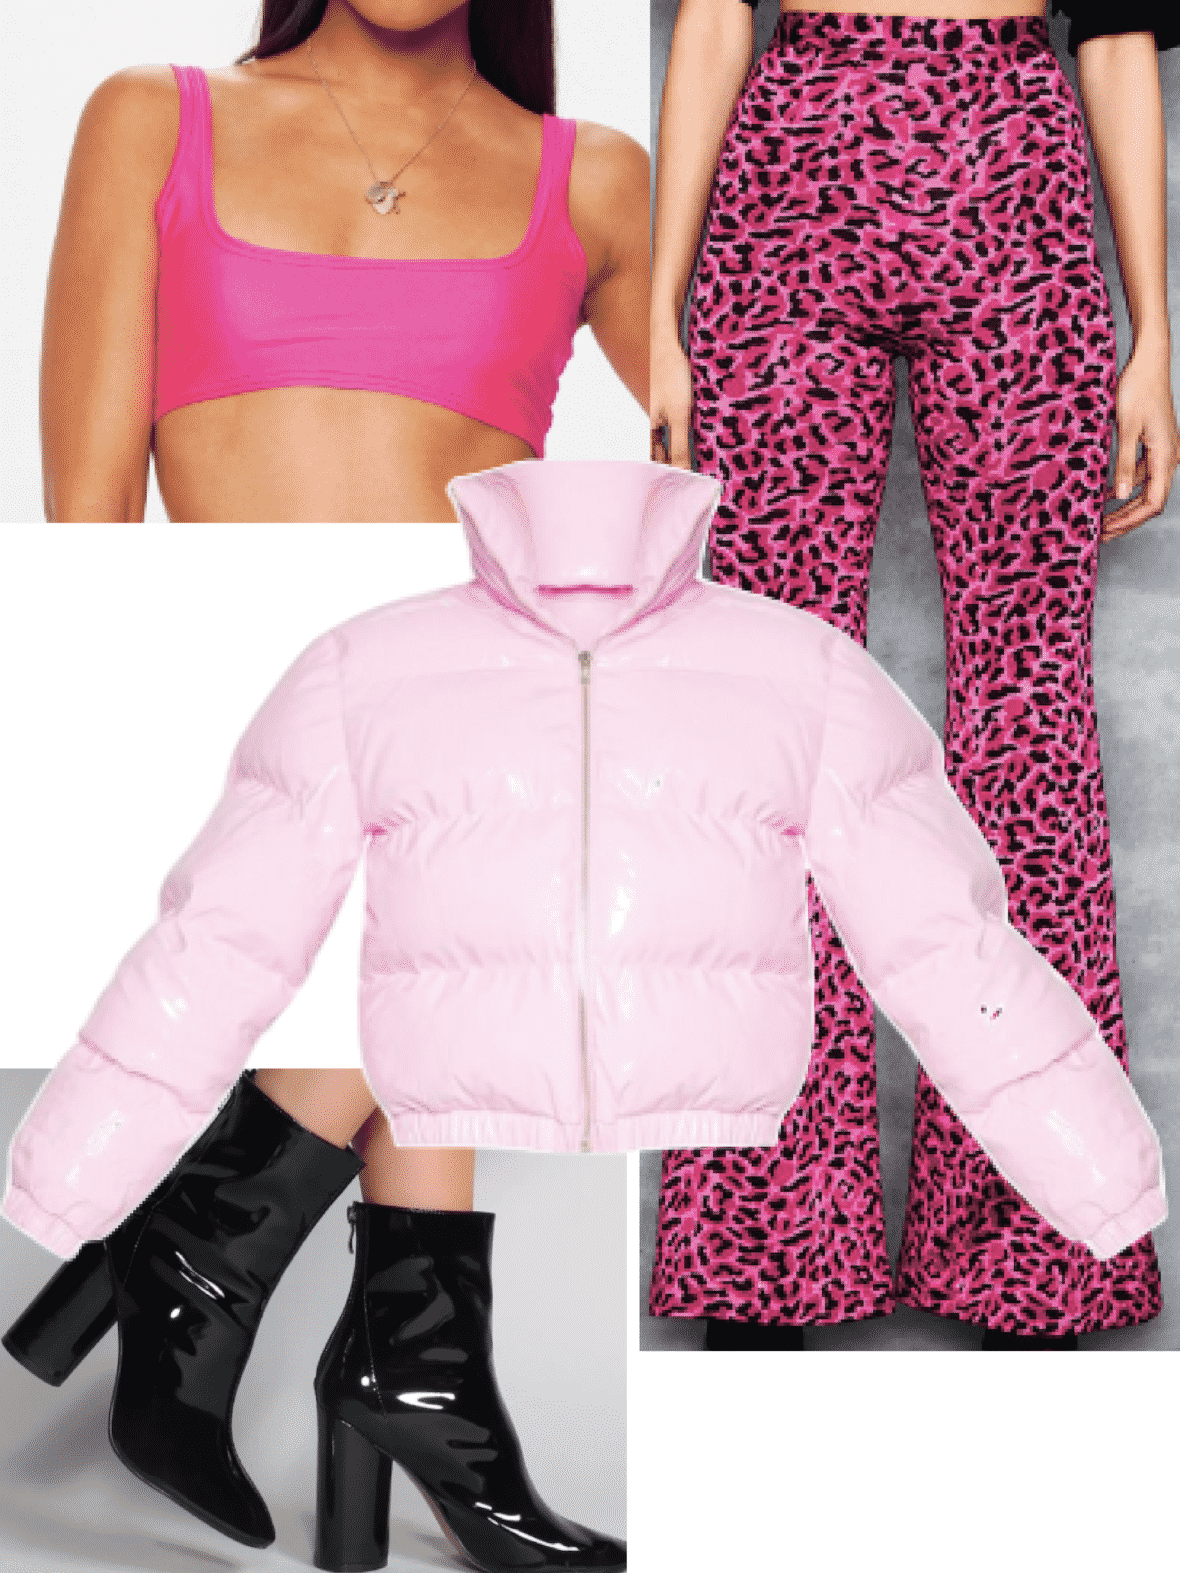 Ariana Grande 7 rings fashion - Pink outfit with neon pink crop top, leopard pants, pink puffer coat, vinyl boots